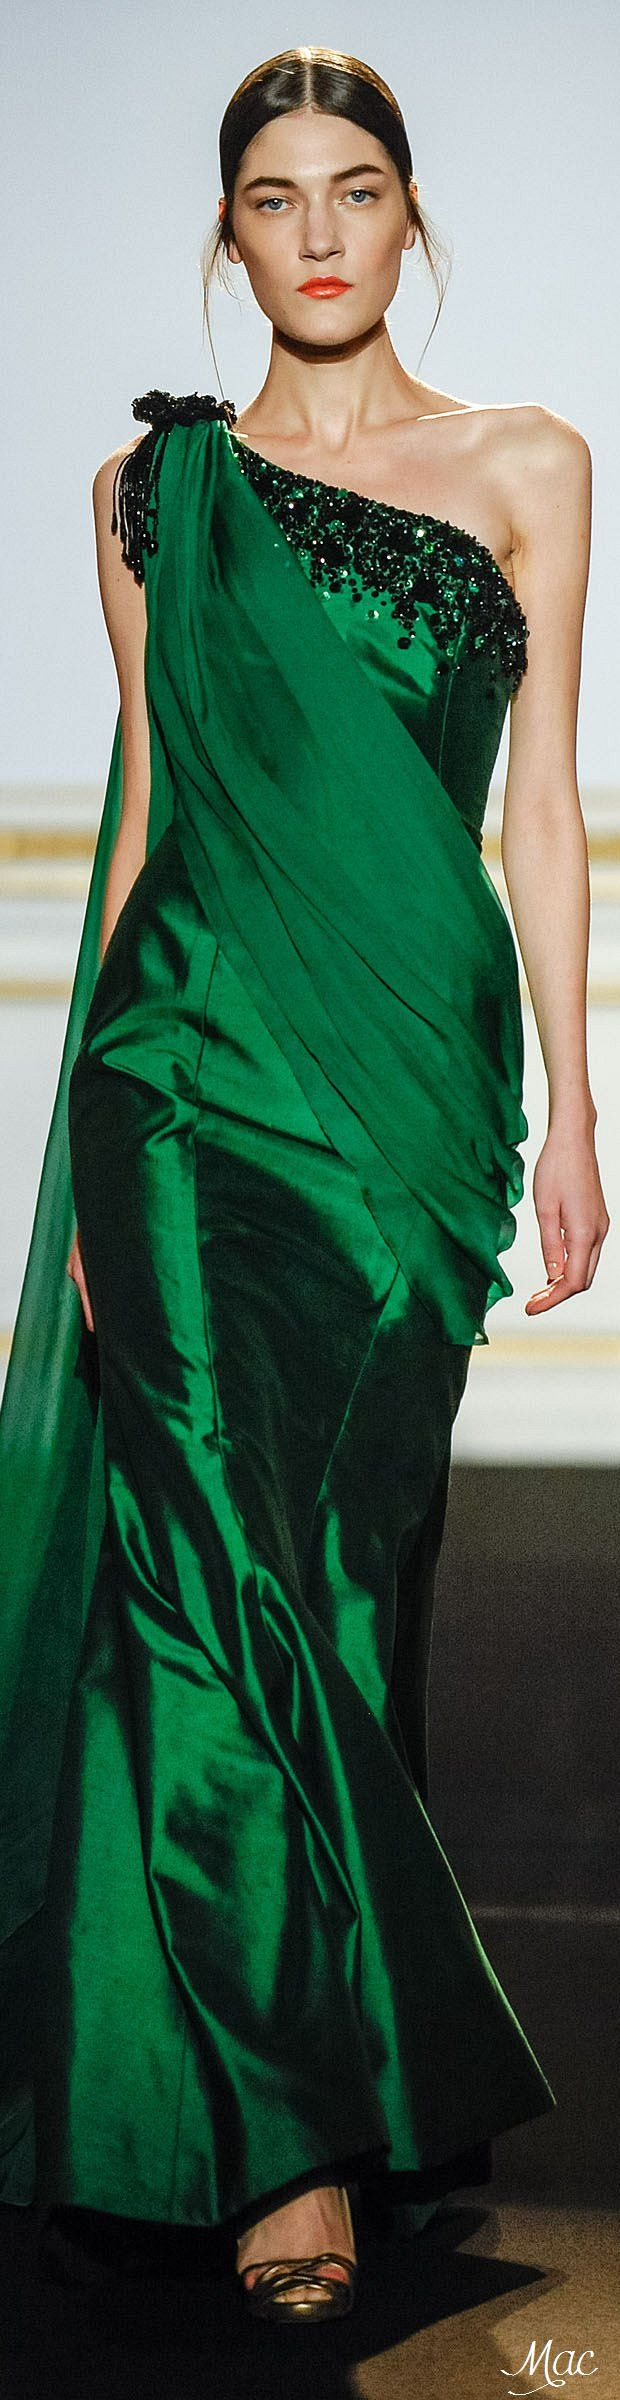 Haute Couture Spring 2015 Dany Atrache gorgeous green dress